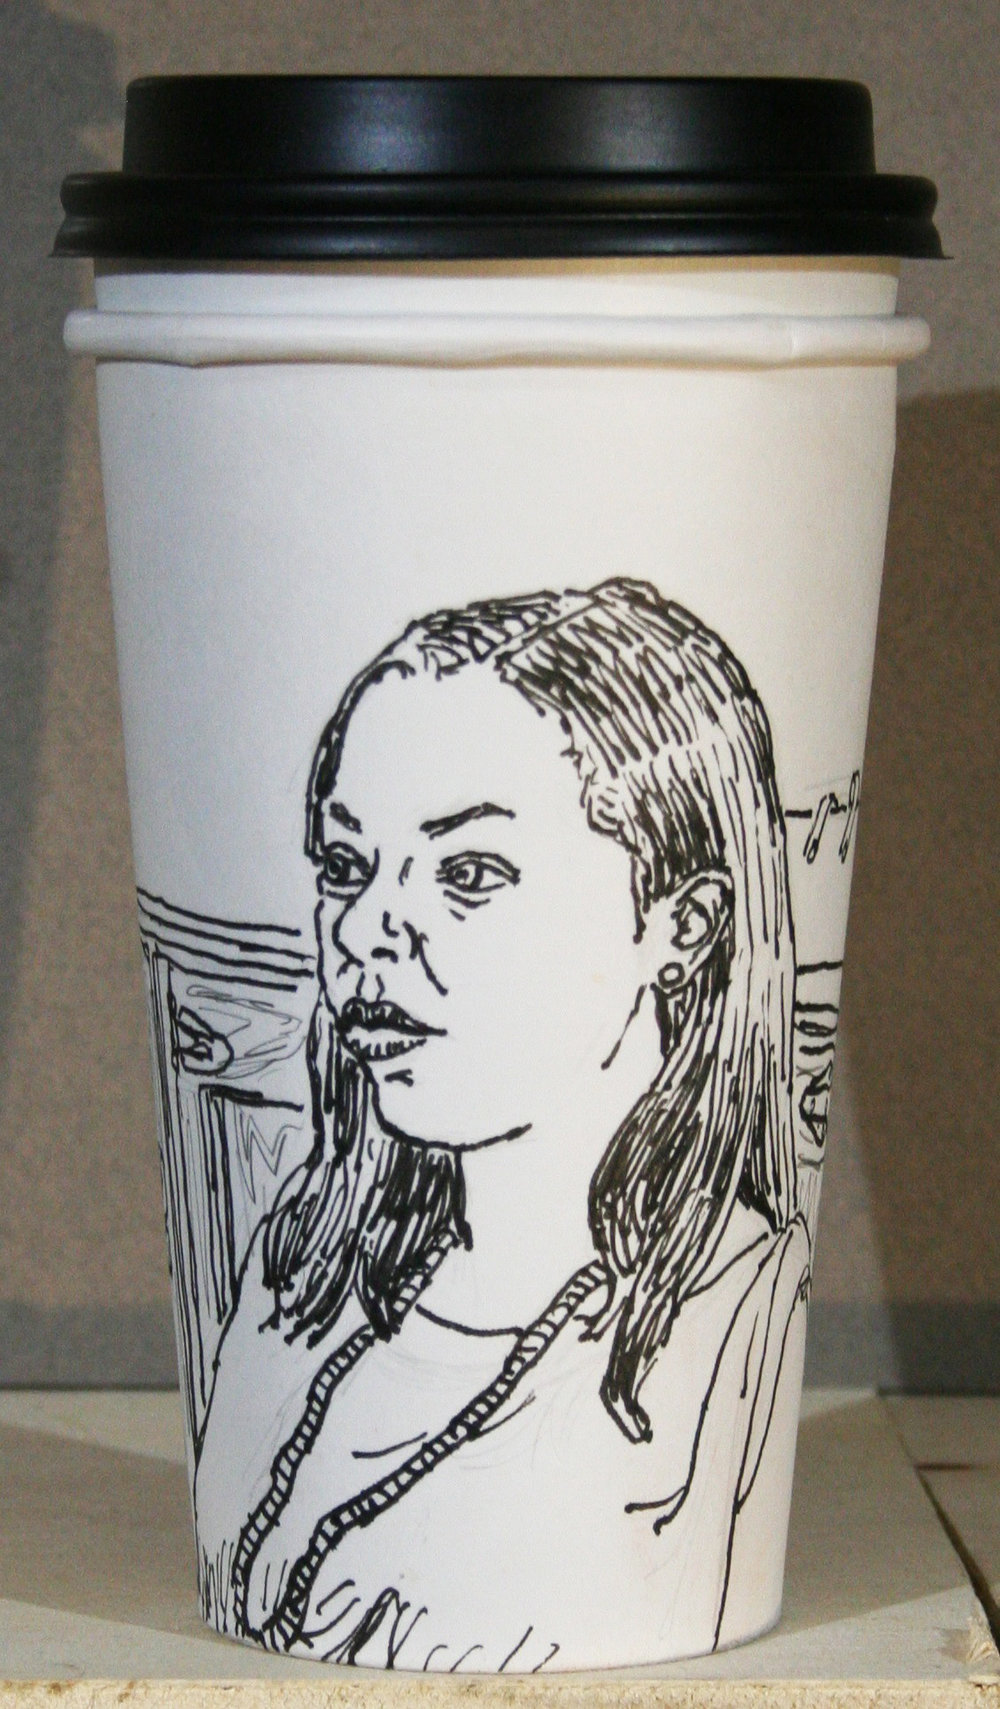 Jack Flotte did this coffee cup ink portrait.